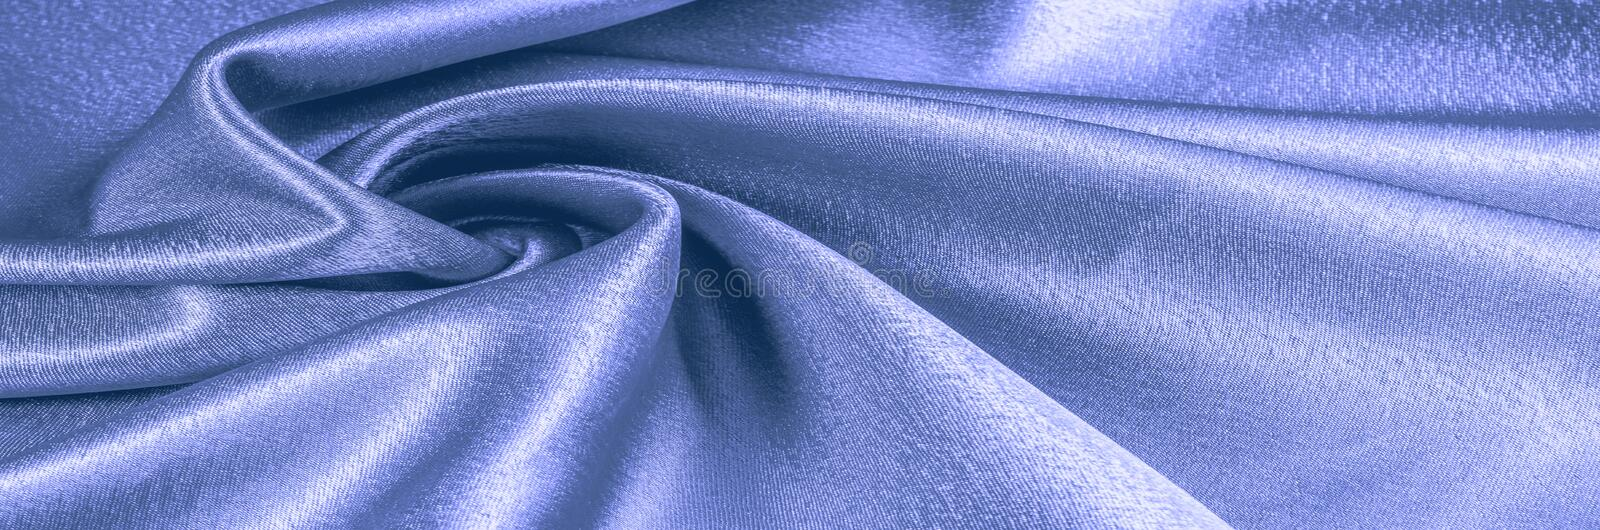 Texture, Fabric made of silk fabric, metal thread. metallic shee. N. blue. The blue ocean. Emerald green metallic. What a dazzling sight this turquoise and royalty free stock image